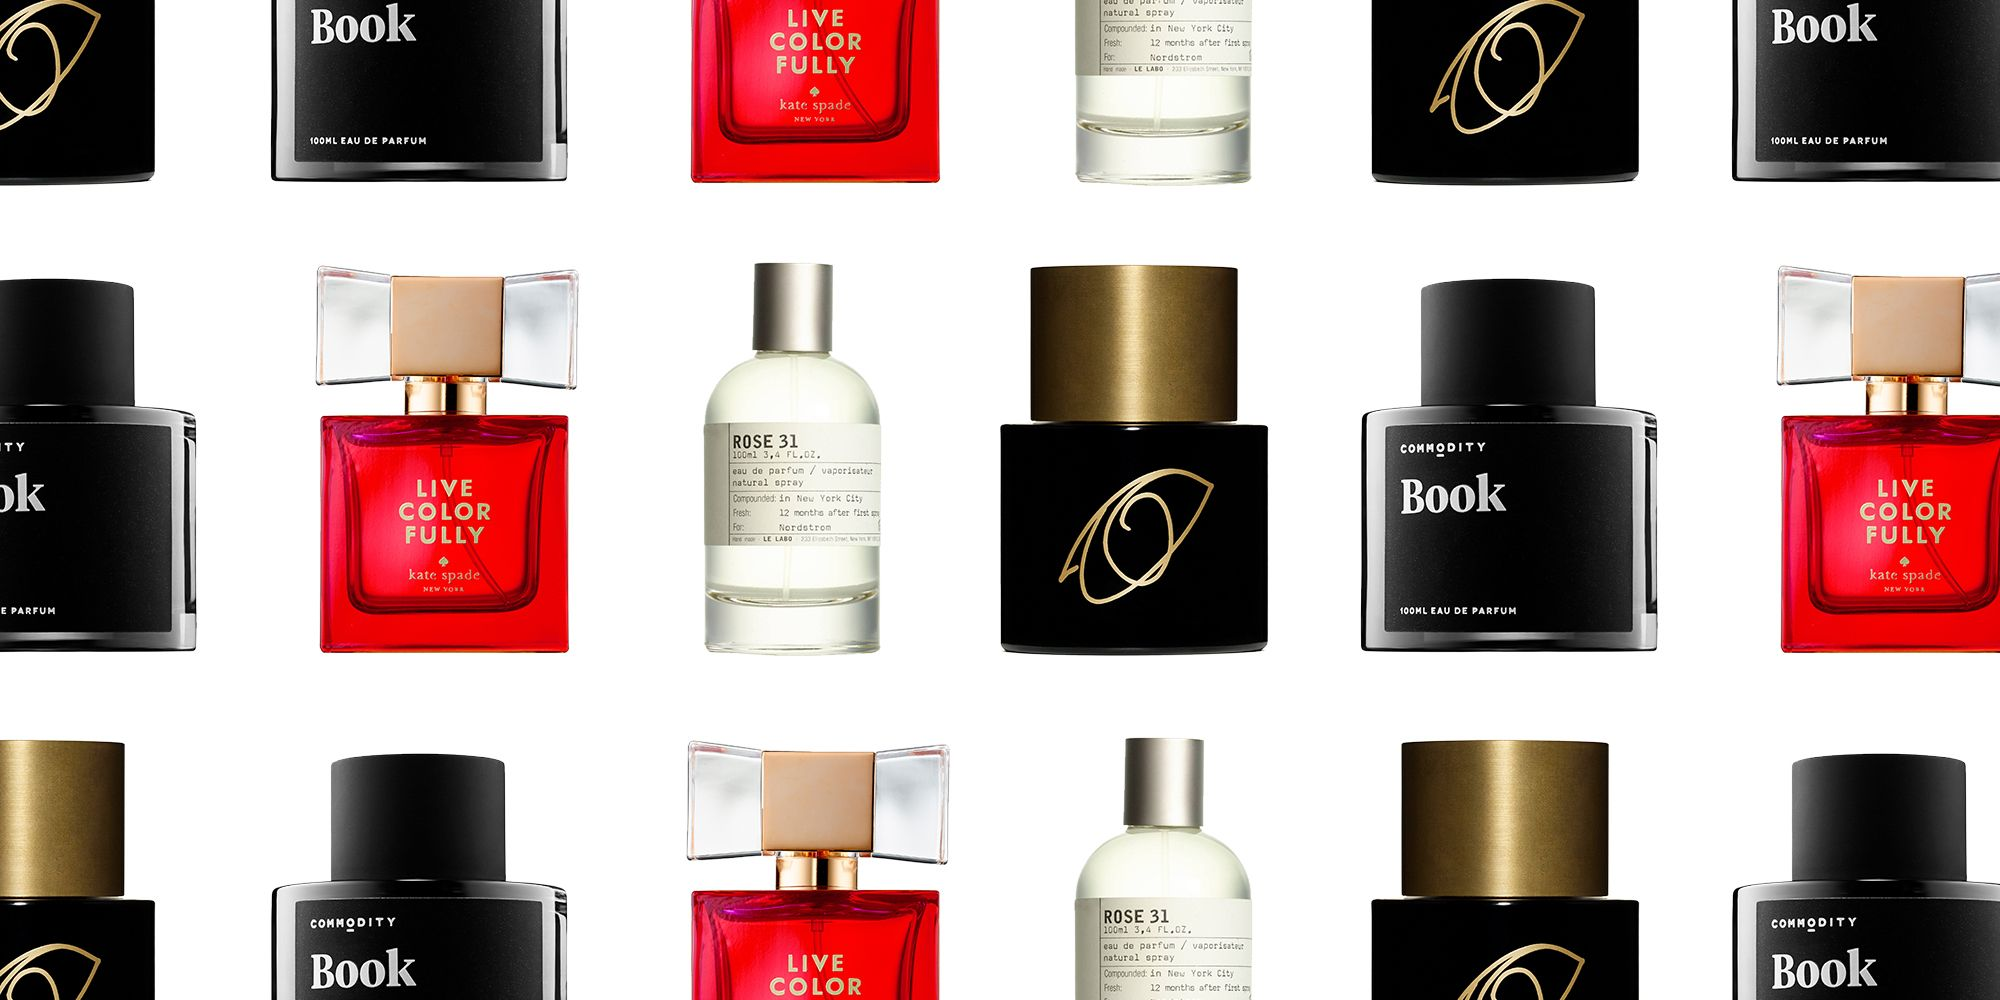 10 Best Perfumes Of 2017 Elle Editors Share Their Signature Scents